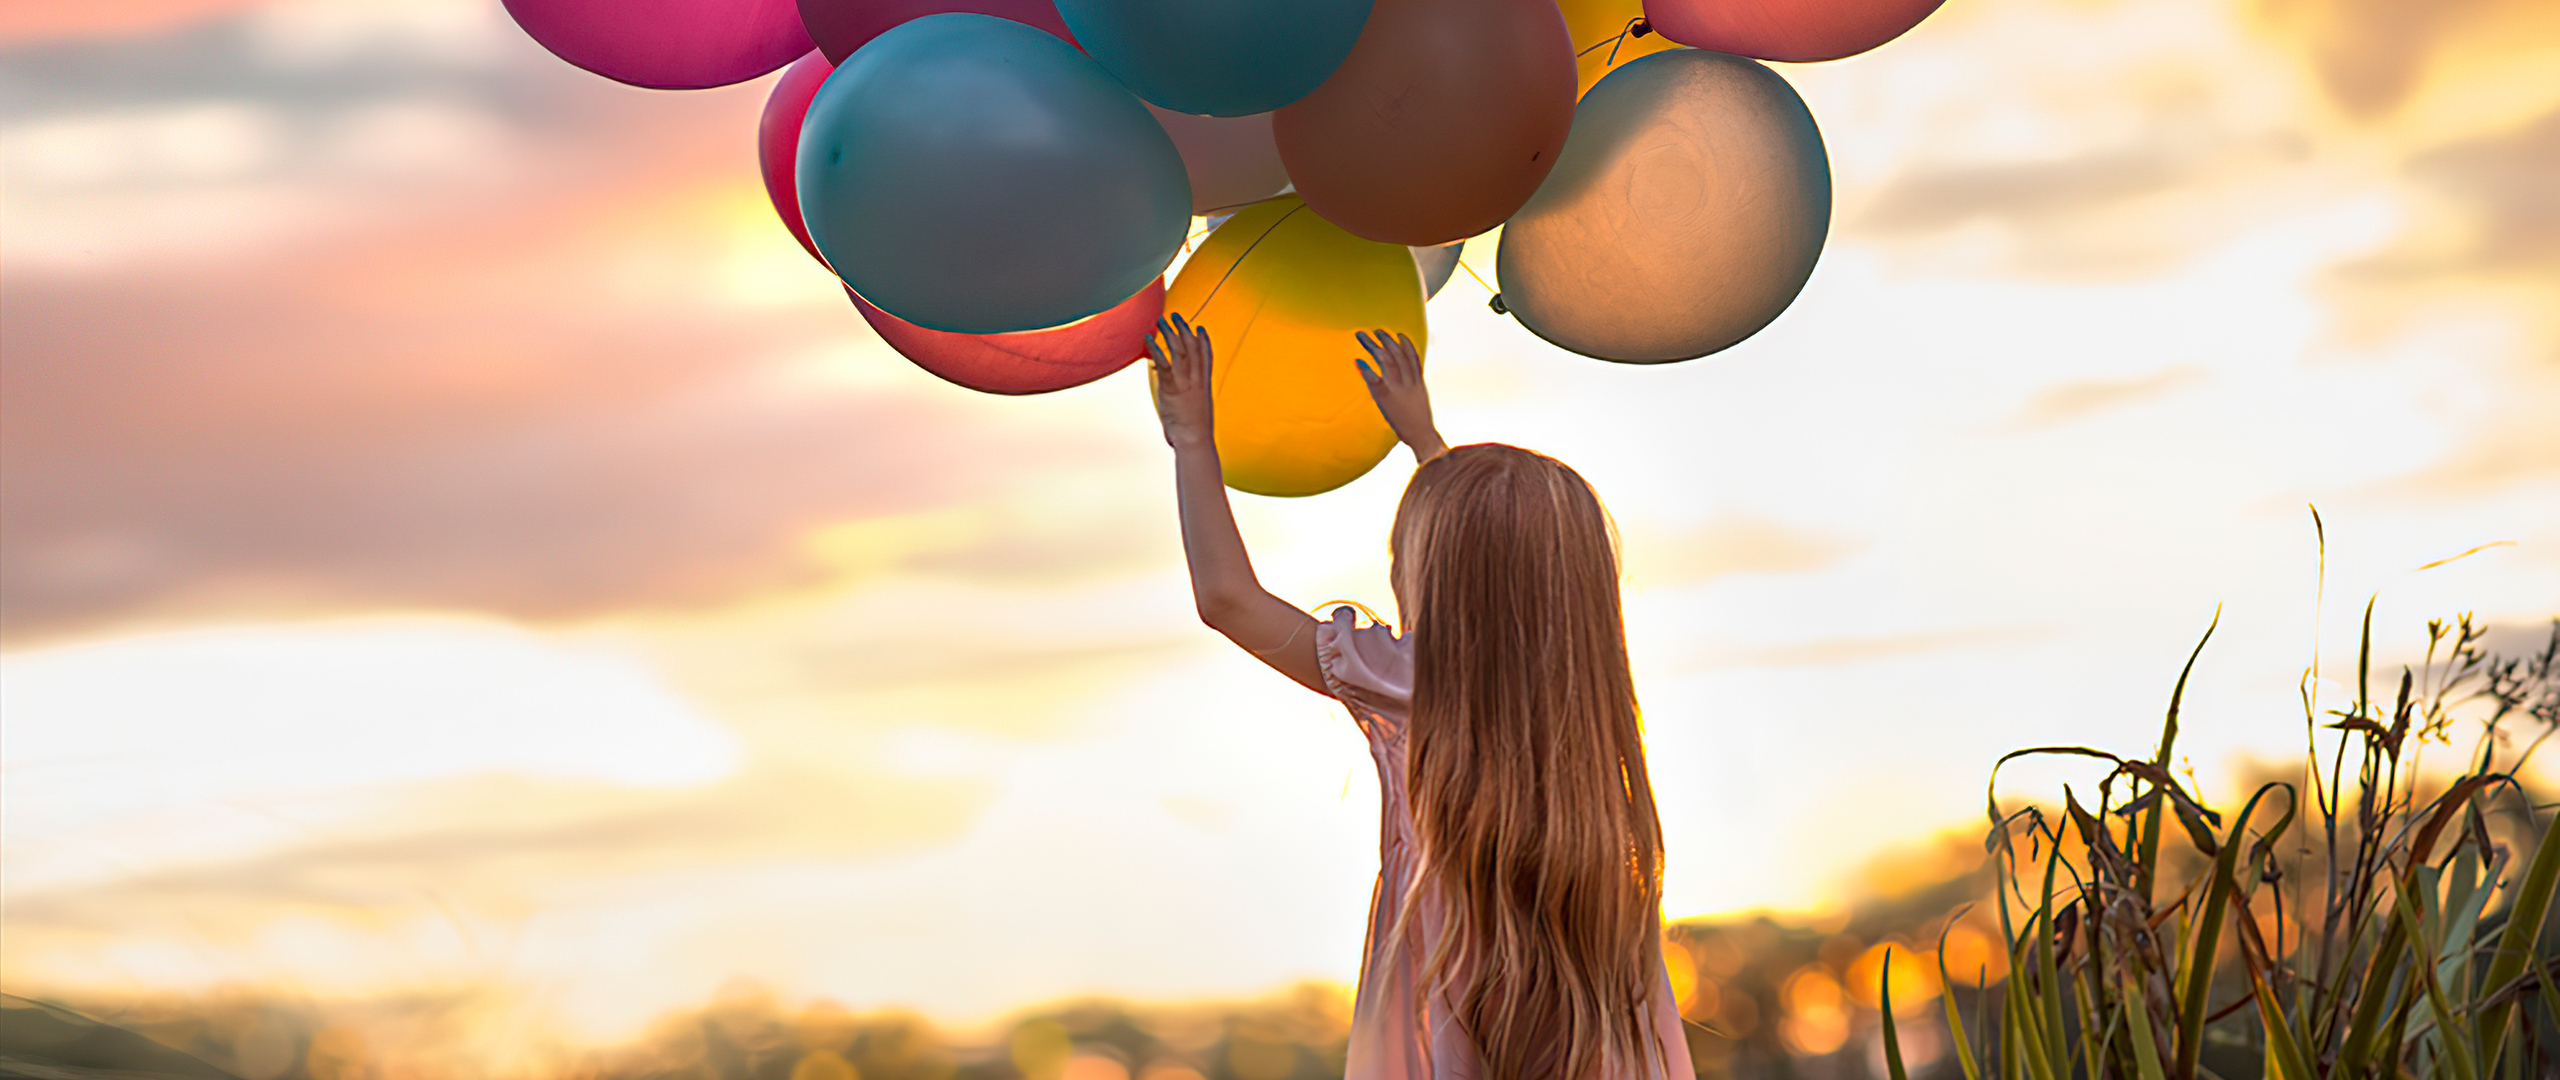 little-girl-with-colorful-balloons-tp.jpg